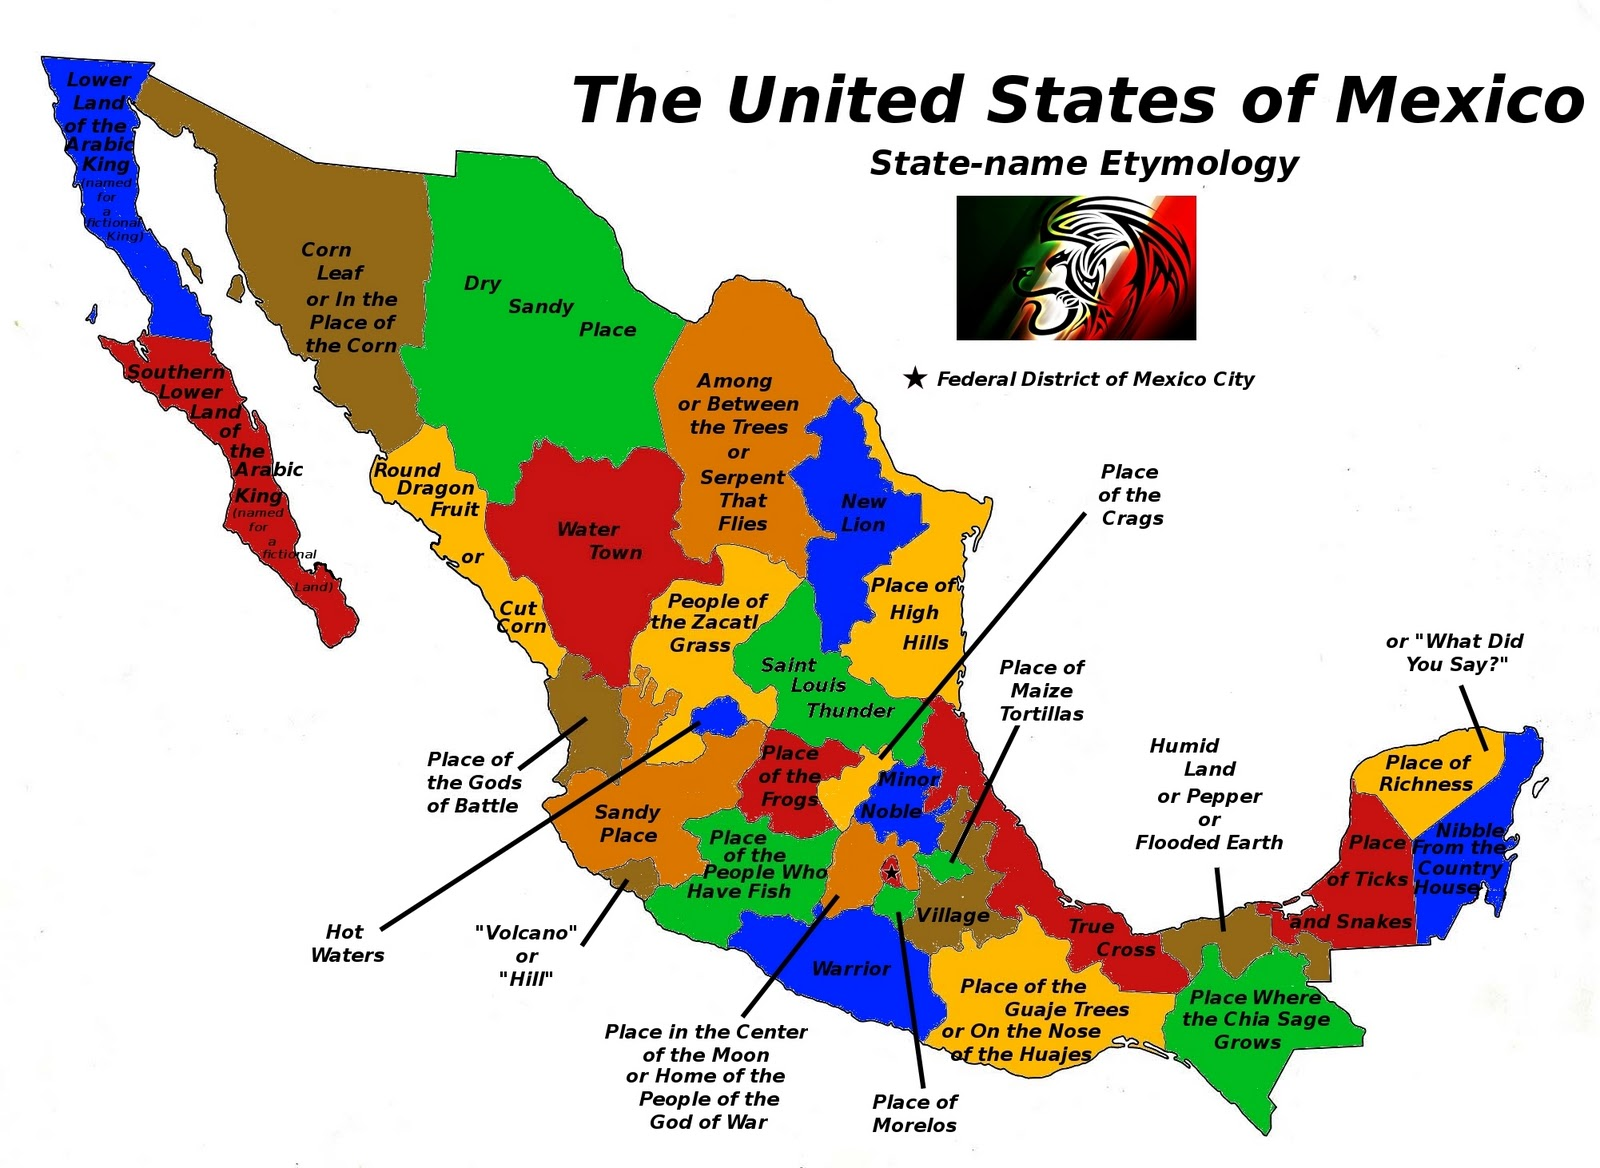 place name etymology of the modern mexican states mexico is not a failed state this image is just filler